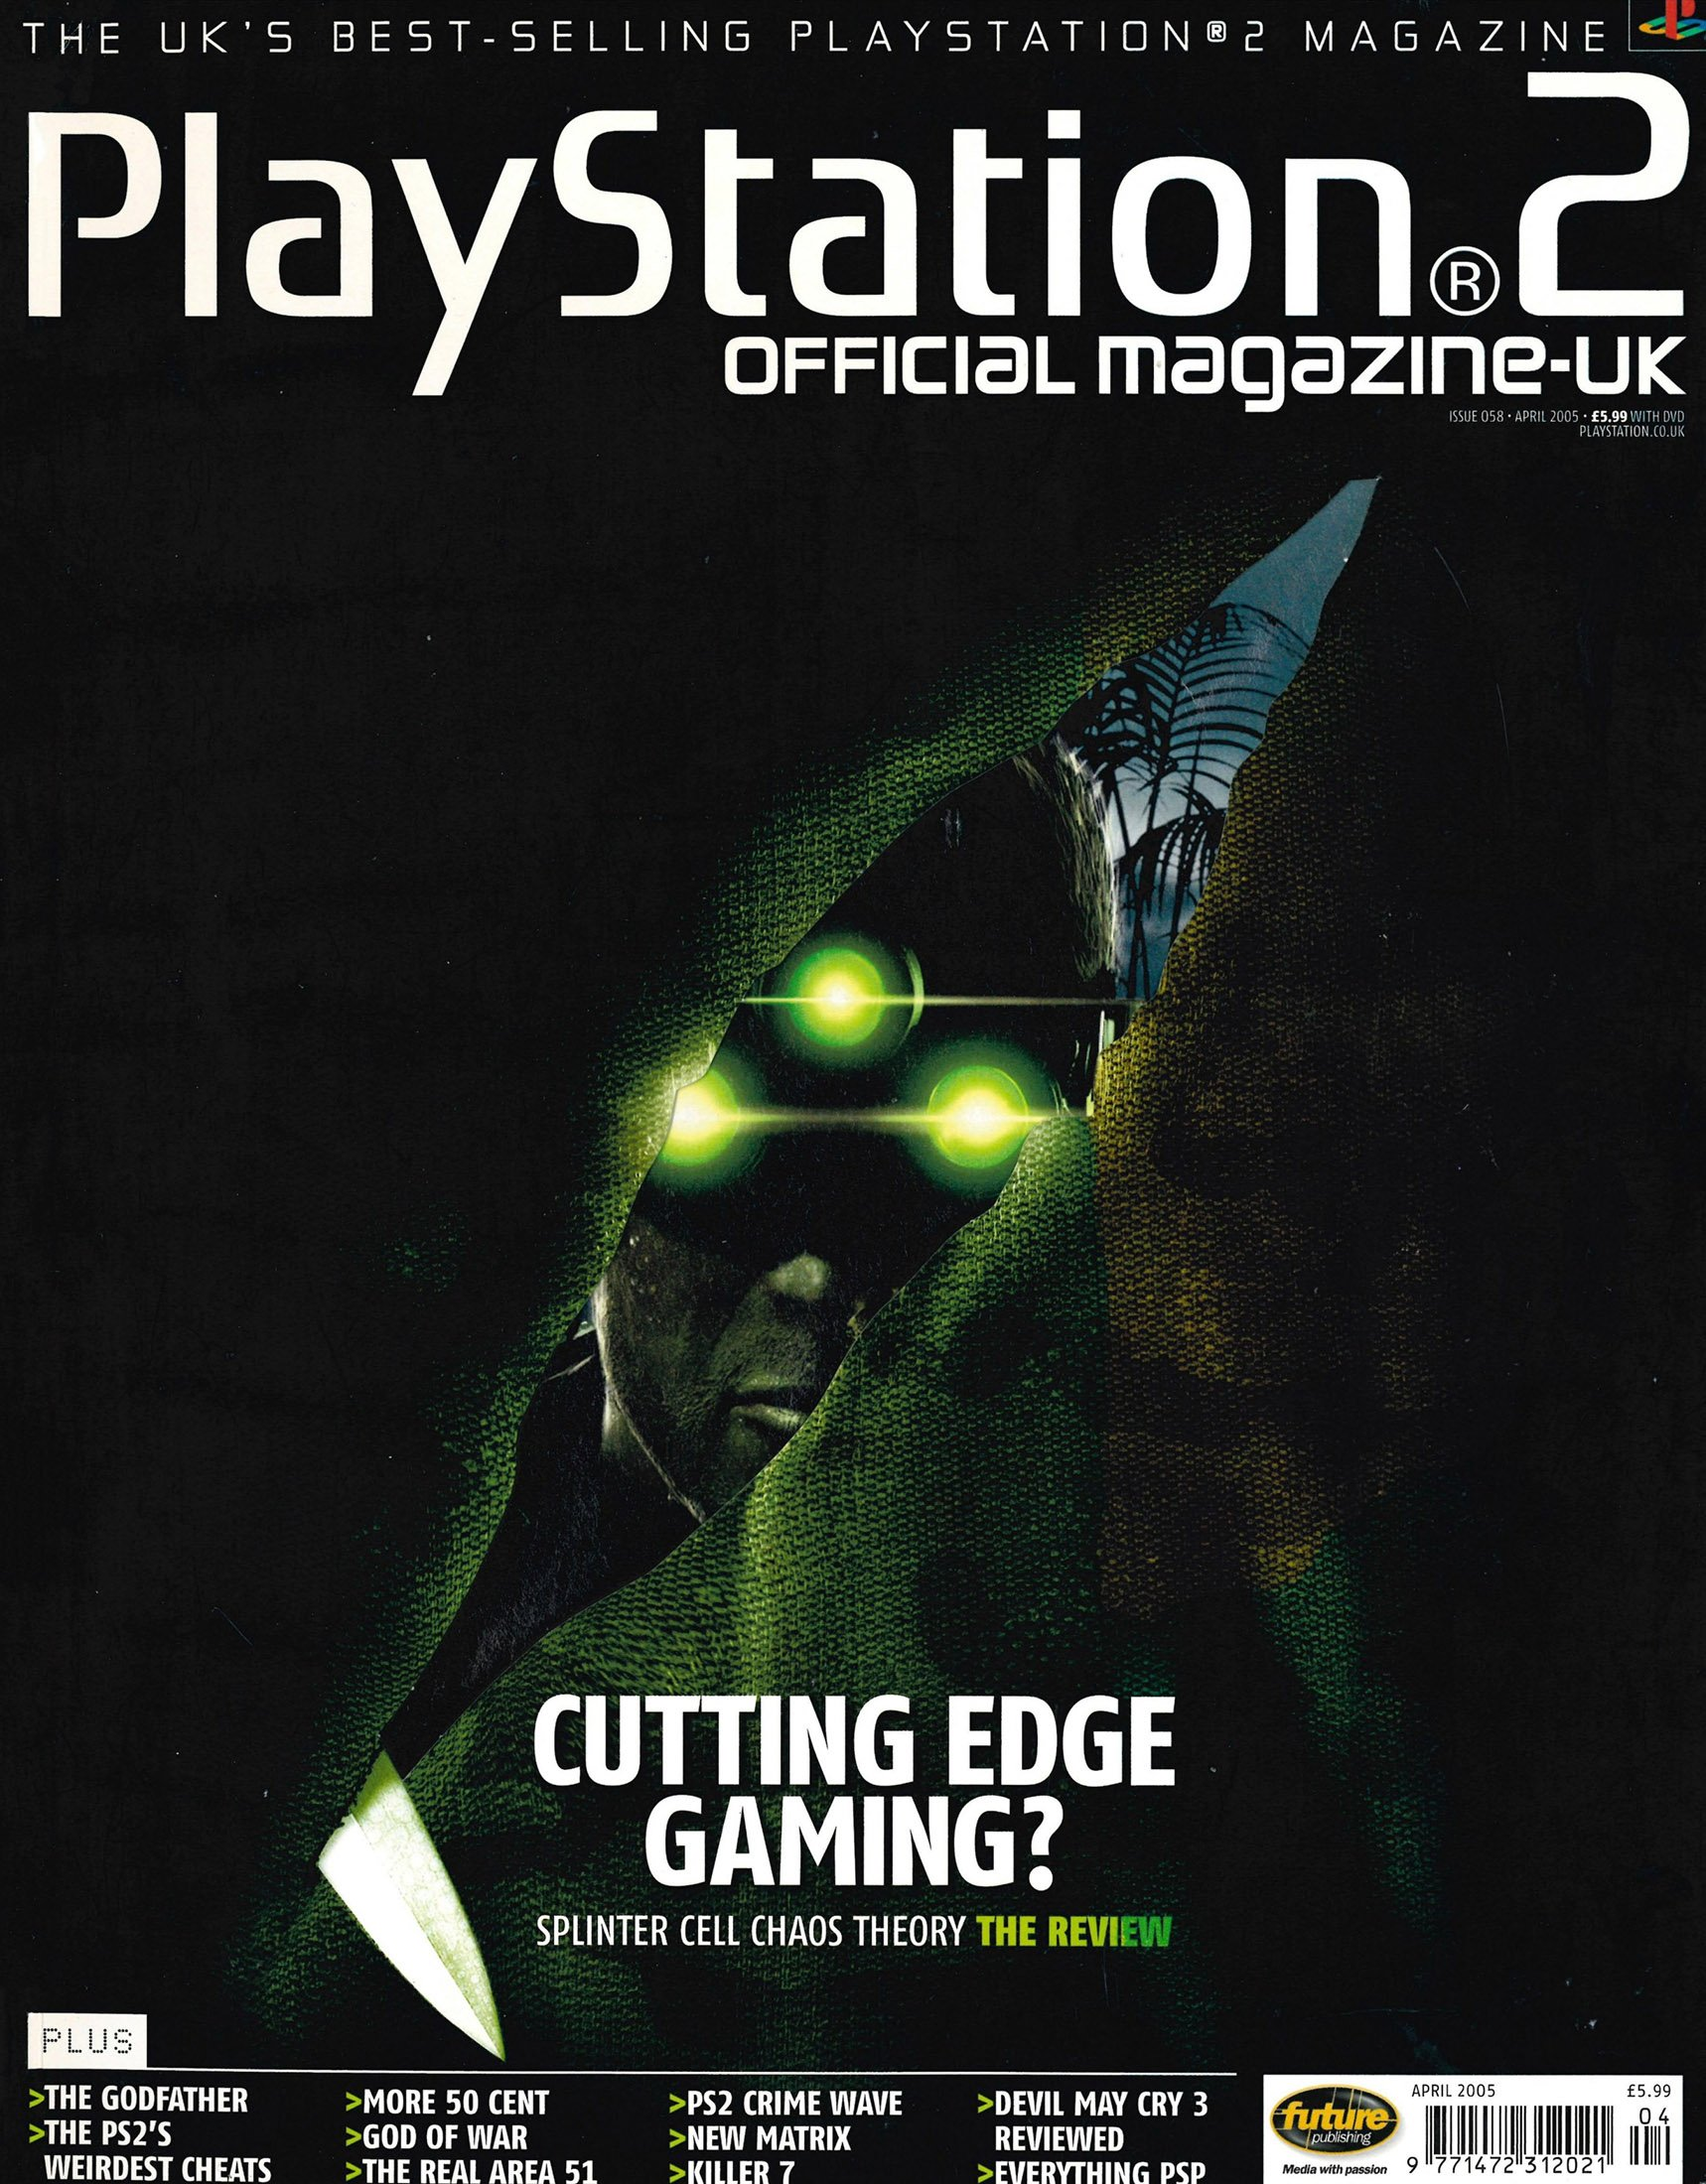 Official Playstation 2 Magazine UK 058 (April 2005)